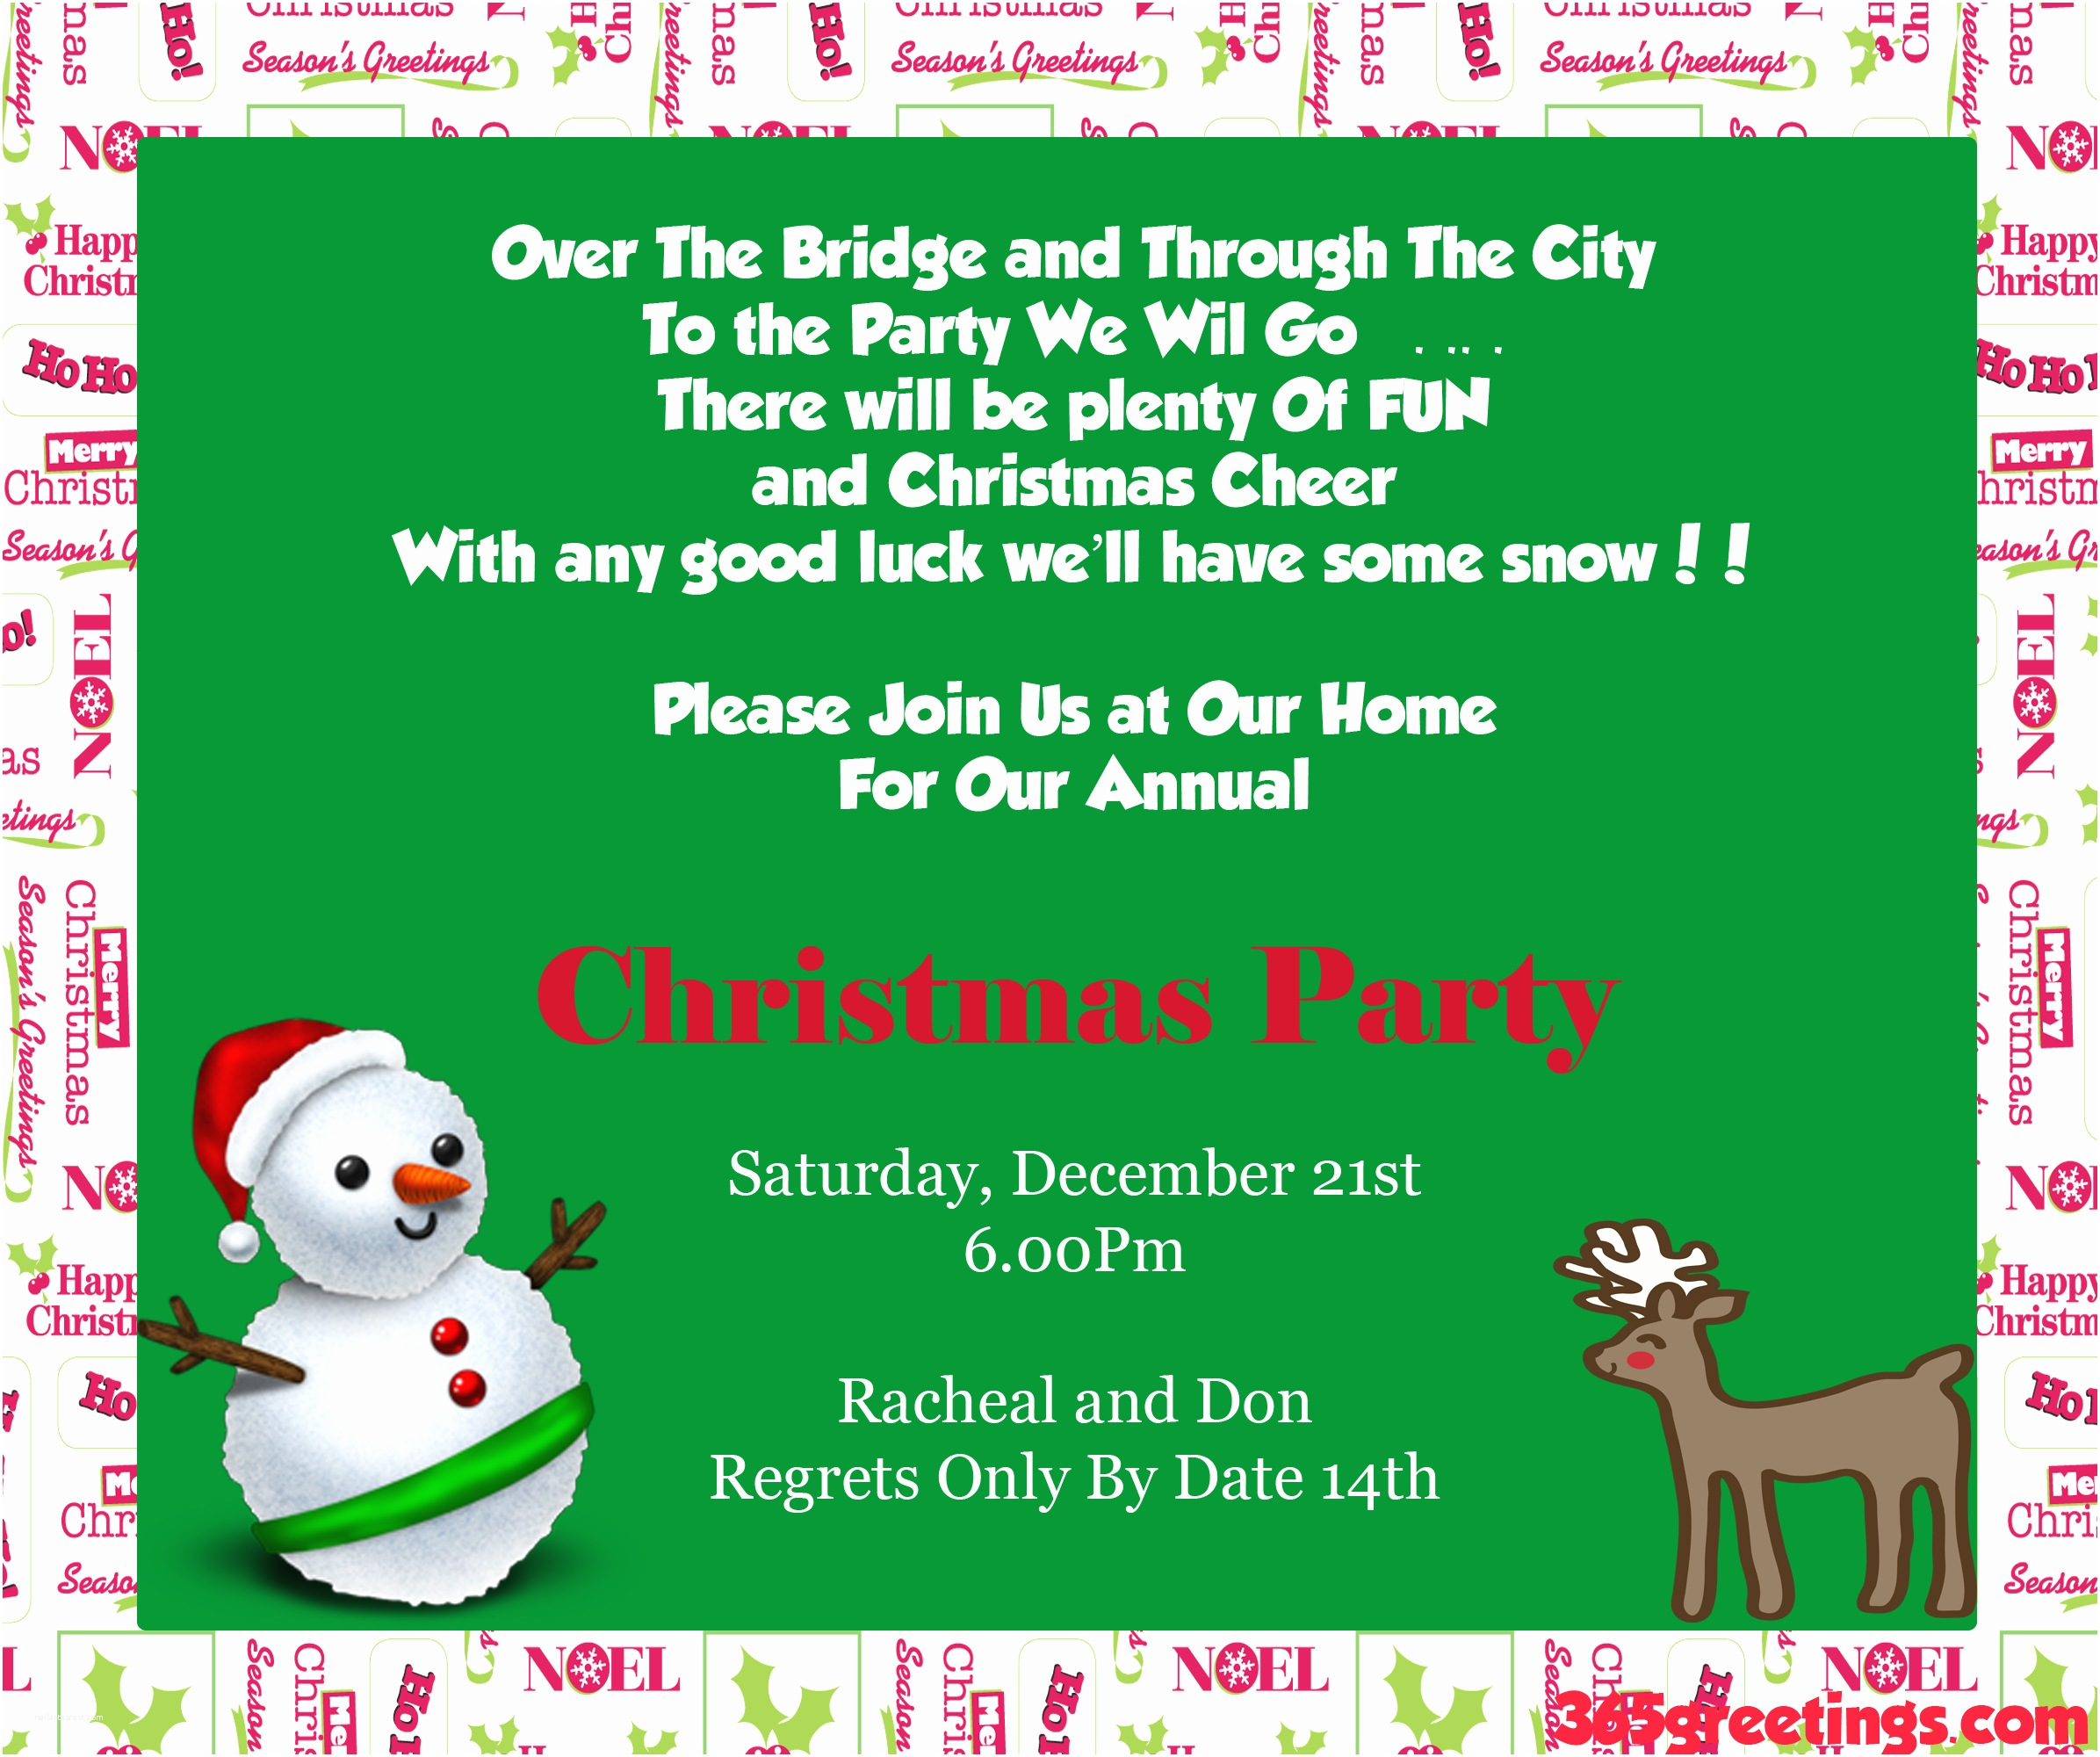 Hilarious Christmas Party Invitation Wording Funny Christmas Party Invitation Wording